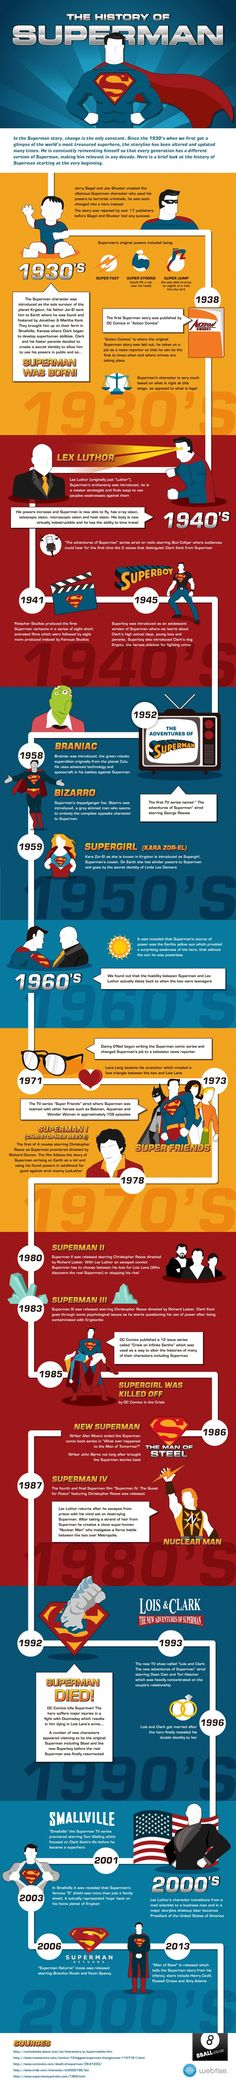 The History of Superman (from 8Ball)